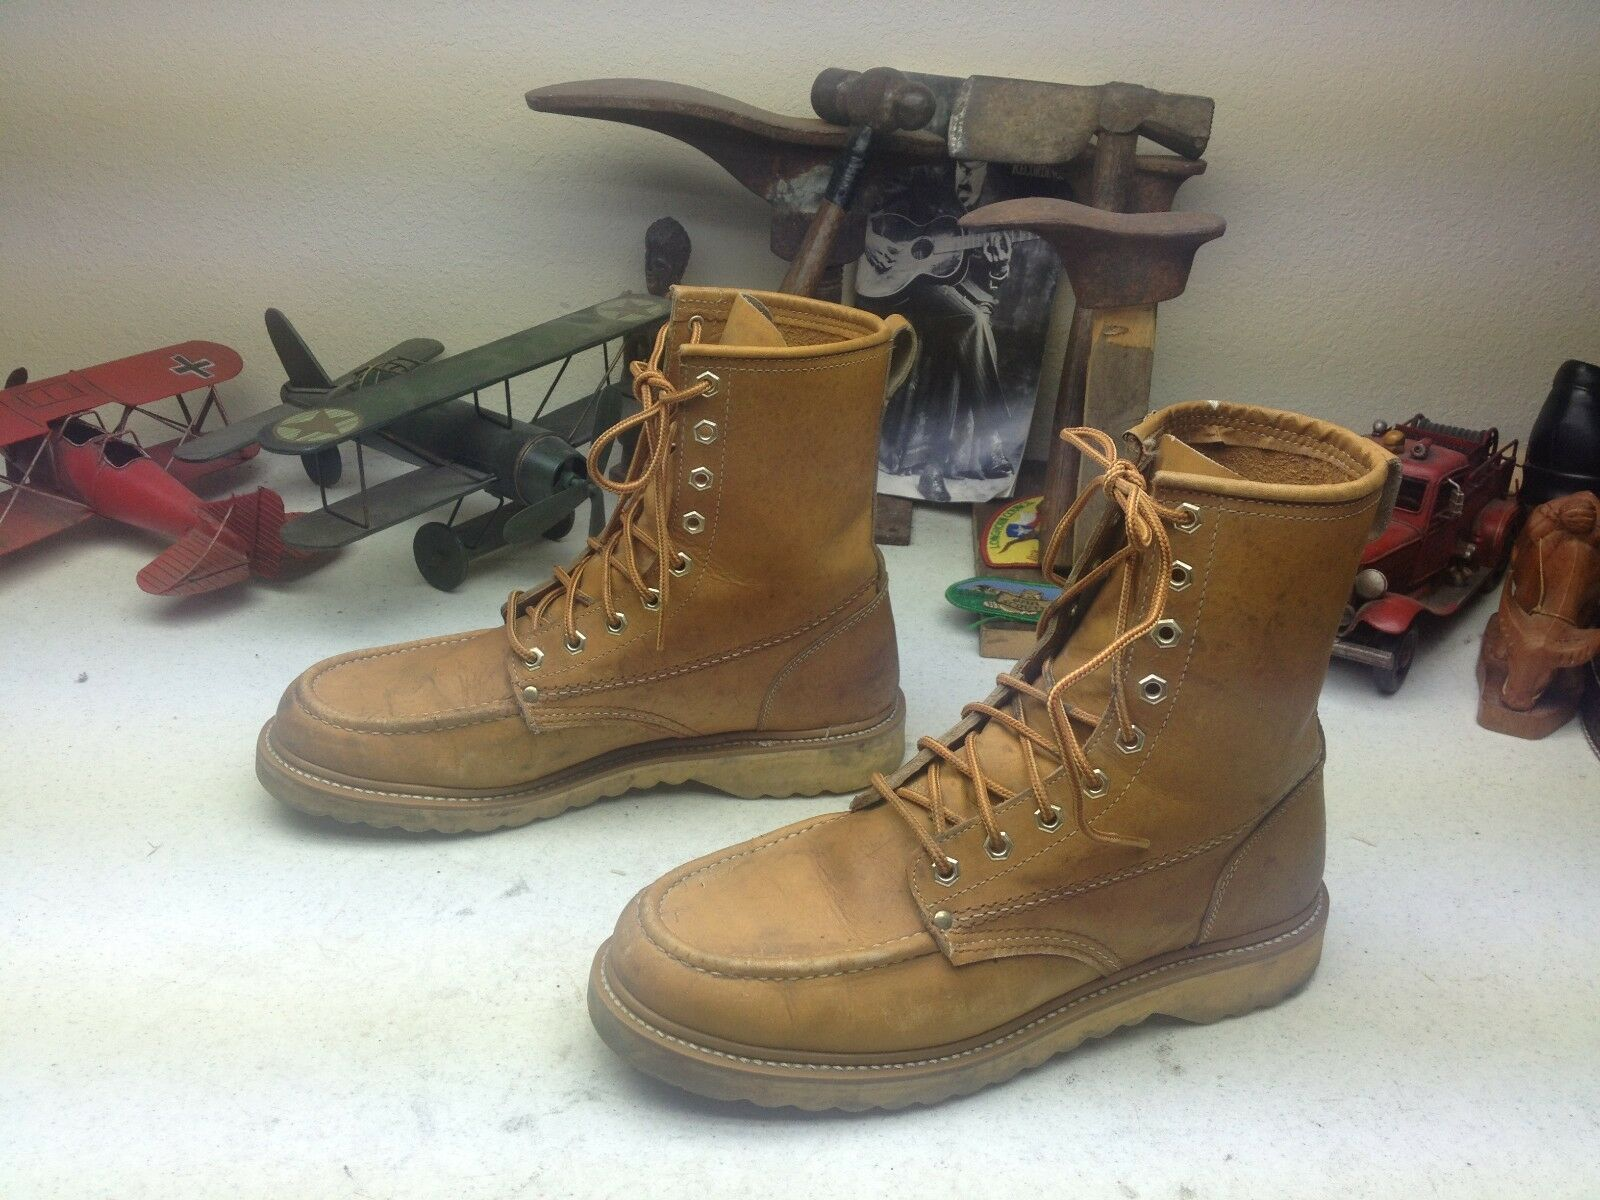 DISTRESSED MONTGOMERY WARDS MUSTARD LEATHER ENGINEER PACKER CHORE BOOTS 10.5 E